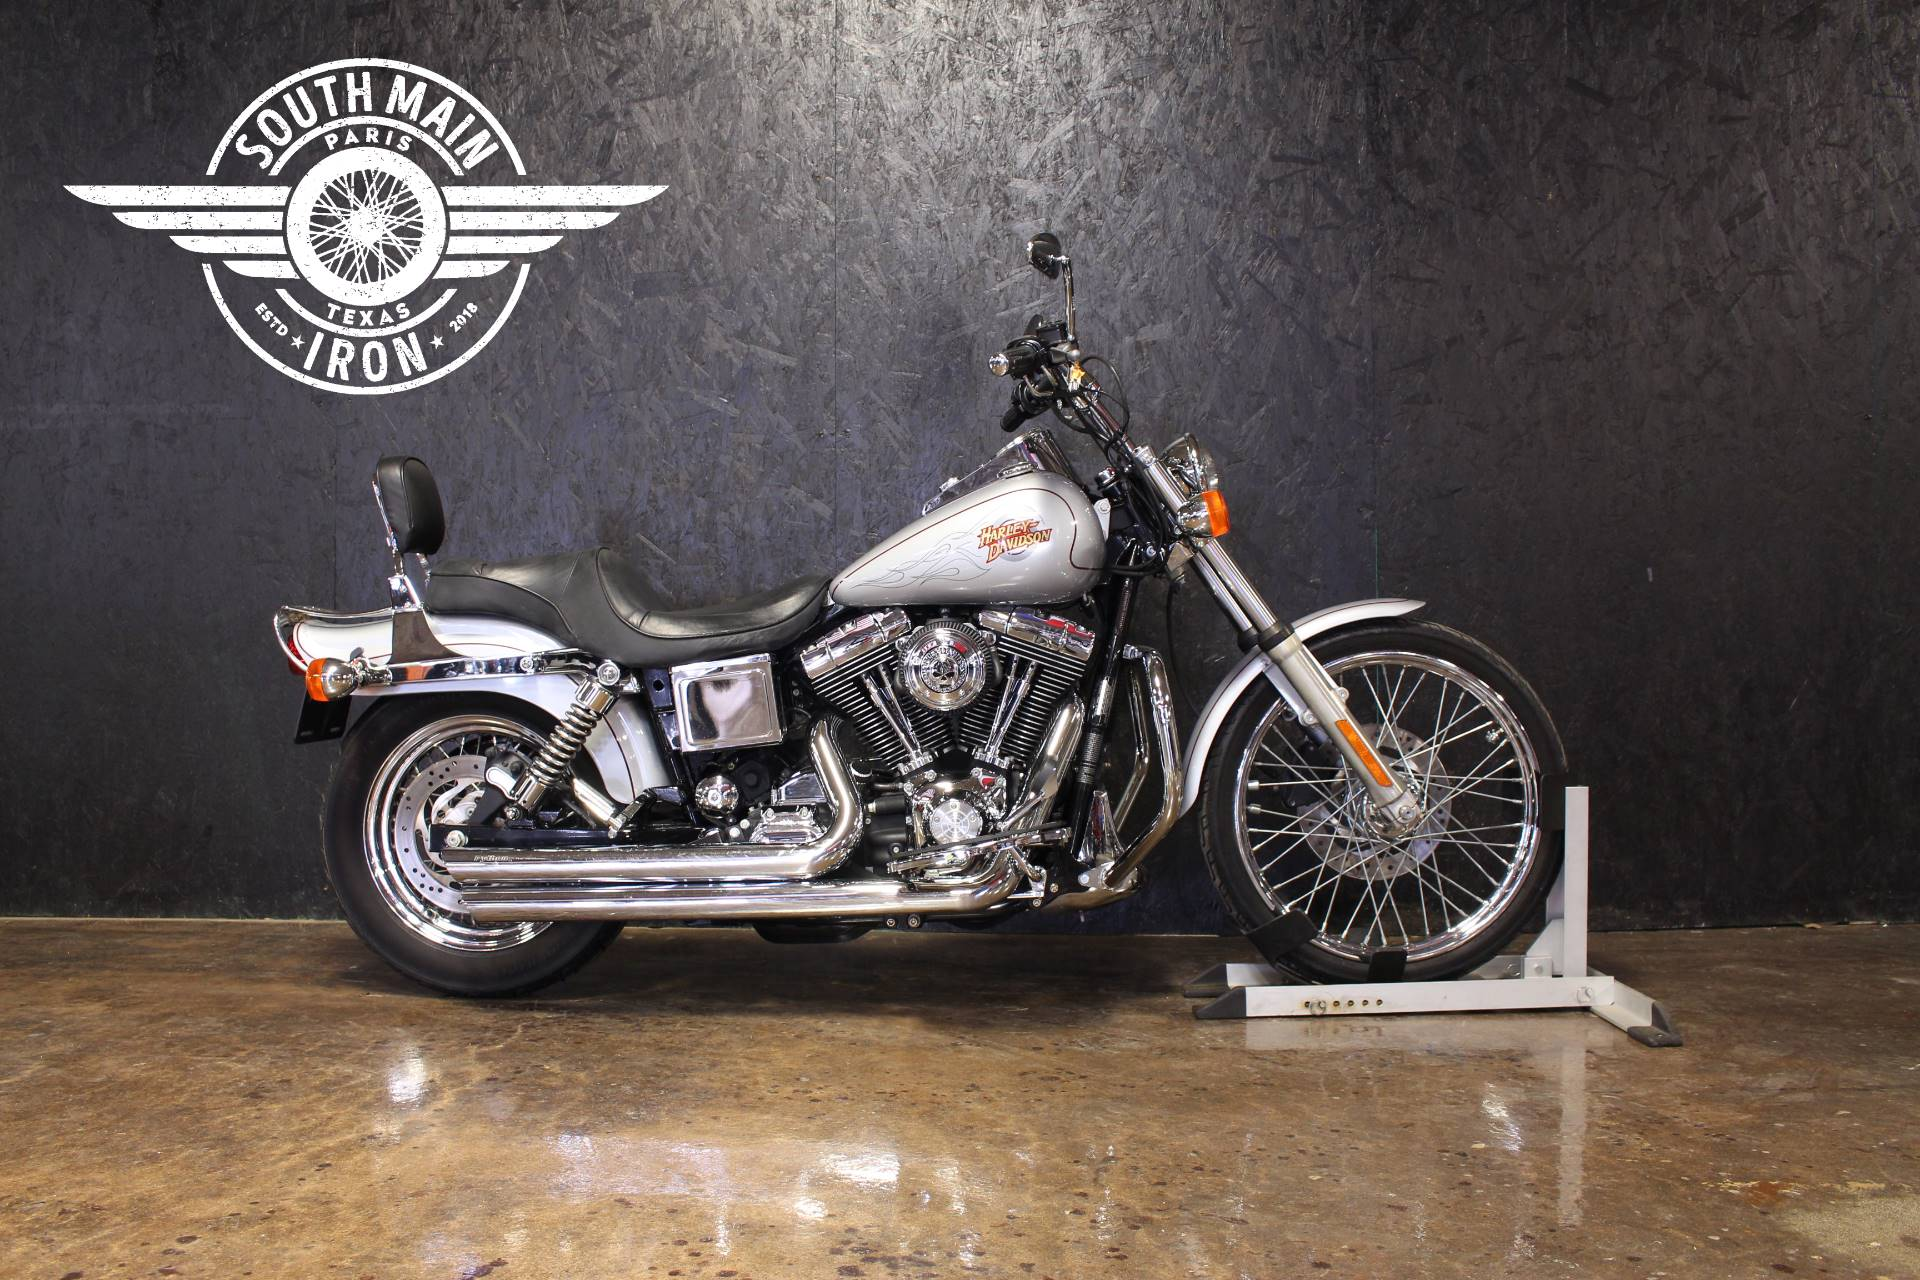 2001 Harley-Davidson FXDWG in Paris, Texas - Photo 1